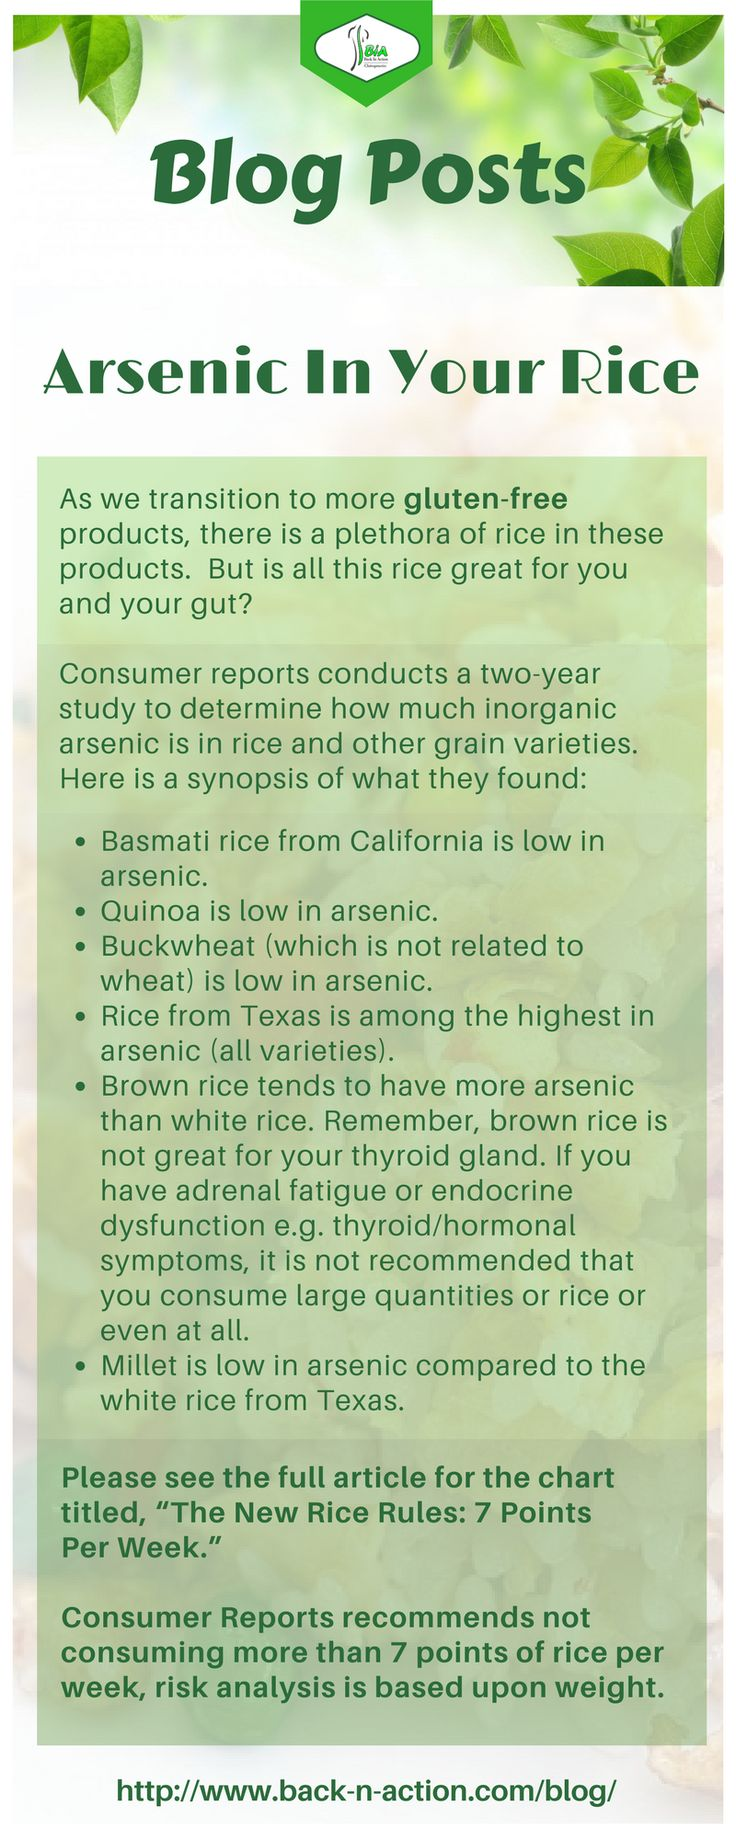 "Please see the full article for the chart titled, ""The New Rice Rules: 7 Points Per Week."". Check out our site for nutrition facts, http://www.back-n-action.com/blog/."